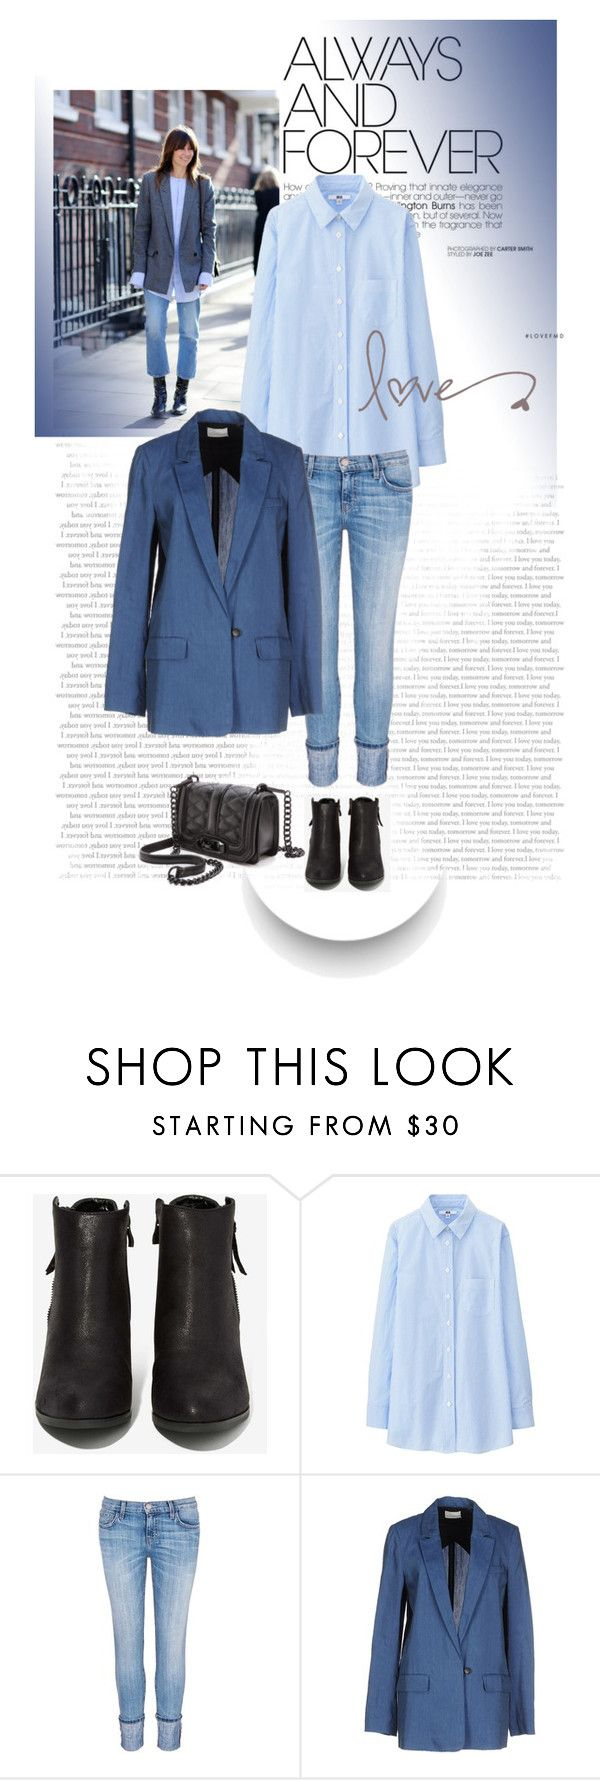 """It suits her............"" by style-stories ❤ liked on Polyvore featuring N.Y.L.A., Uniqlo, Current/Elliott, Forte Forte and Rebecca Minkoff"